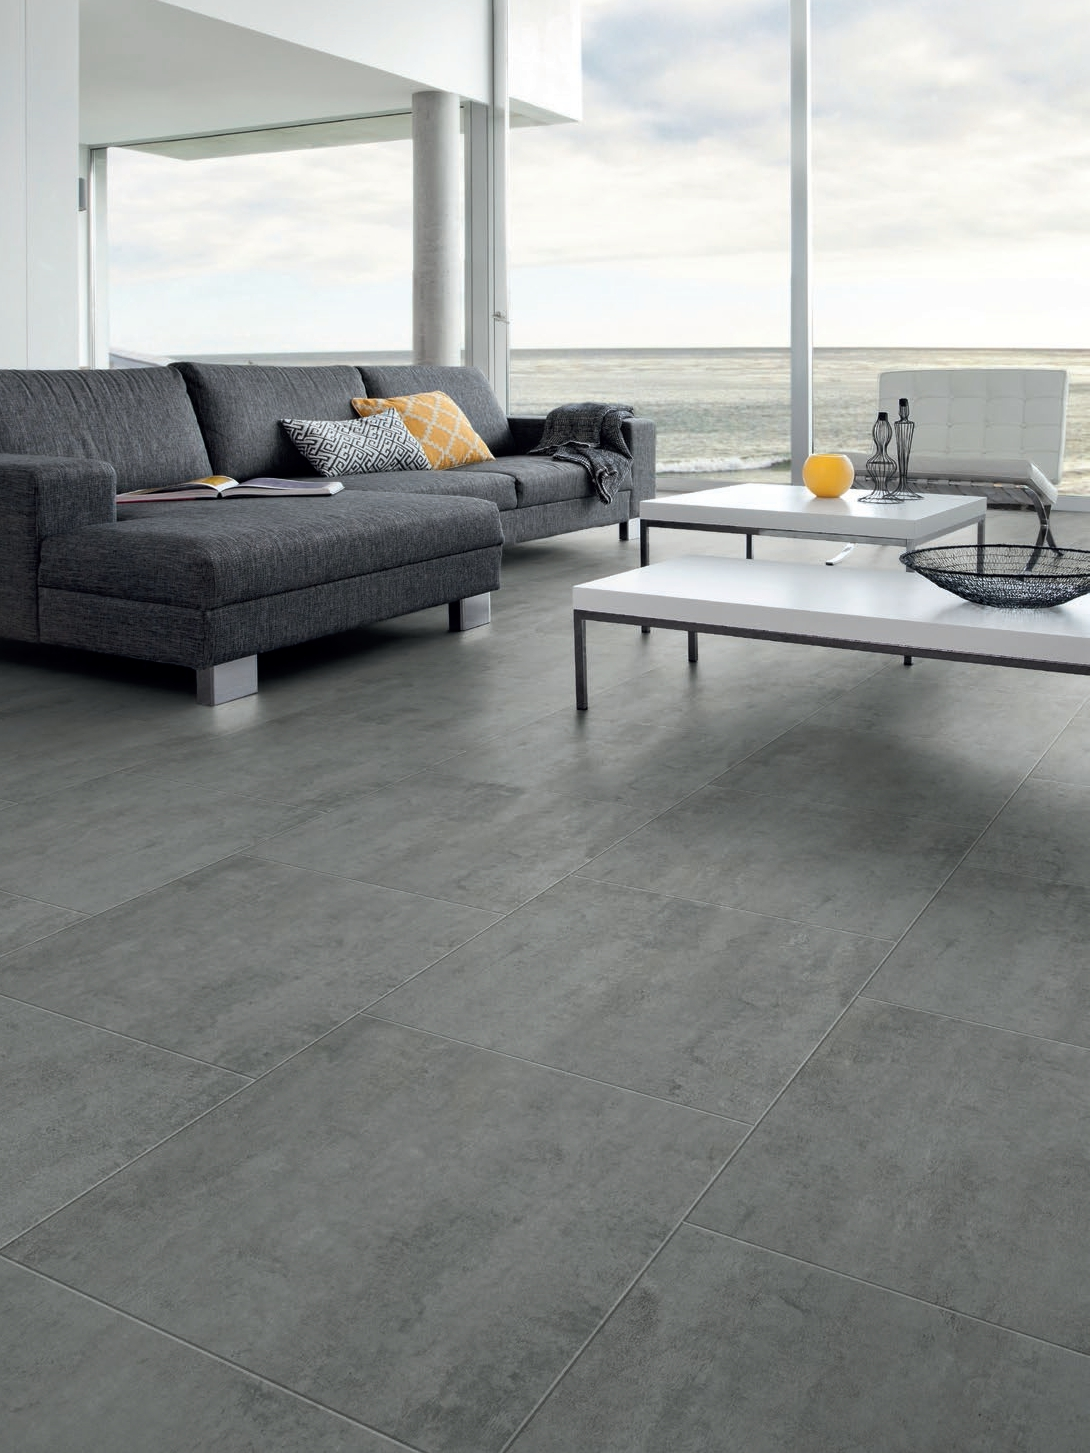 Virtuo classic 30 flooring with concrete effect by gerflor for Parquet pvc gerflor